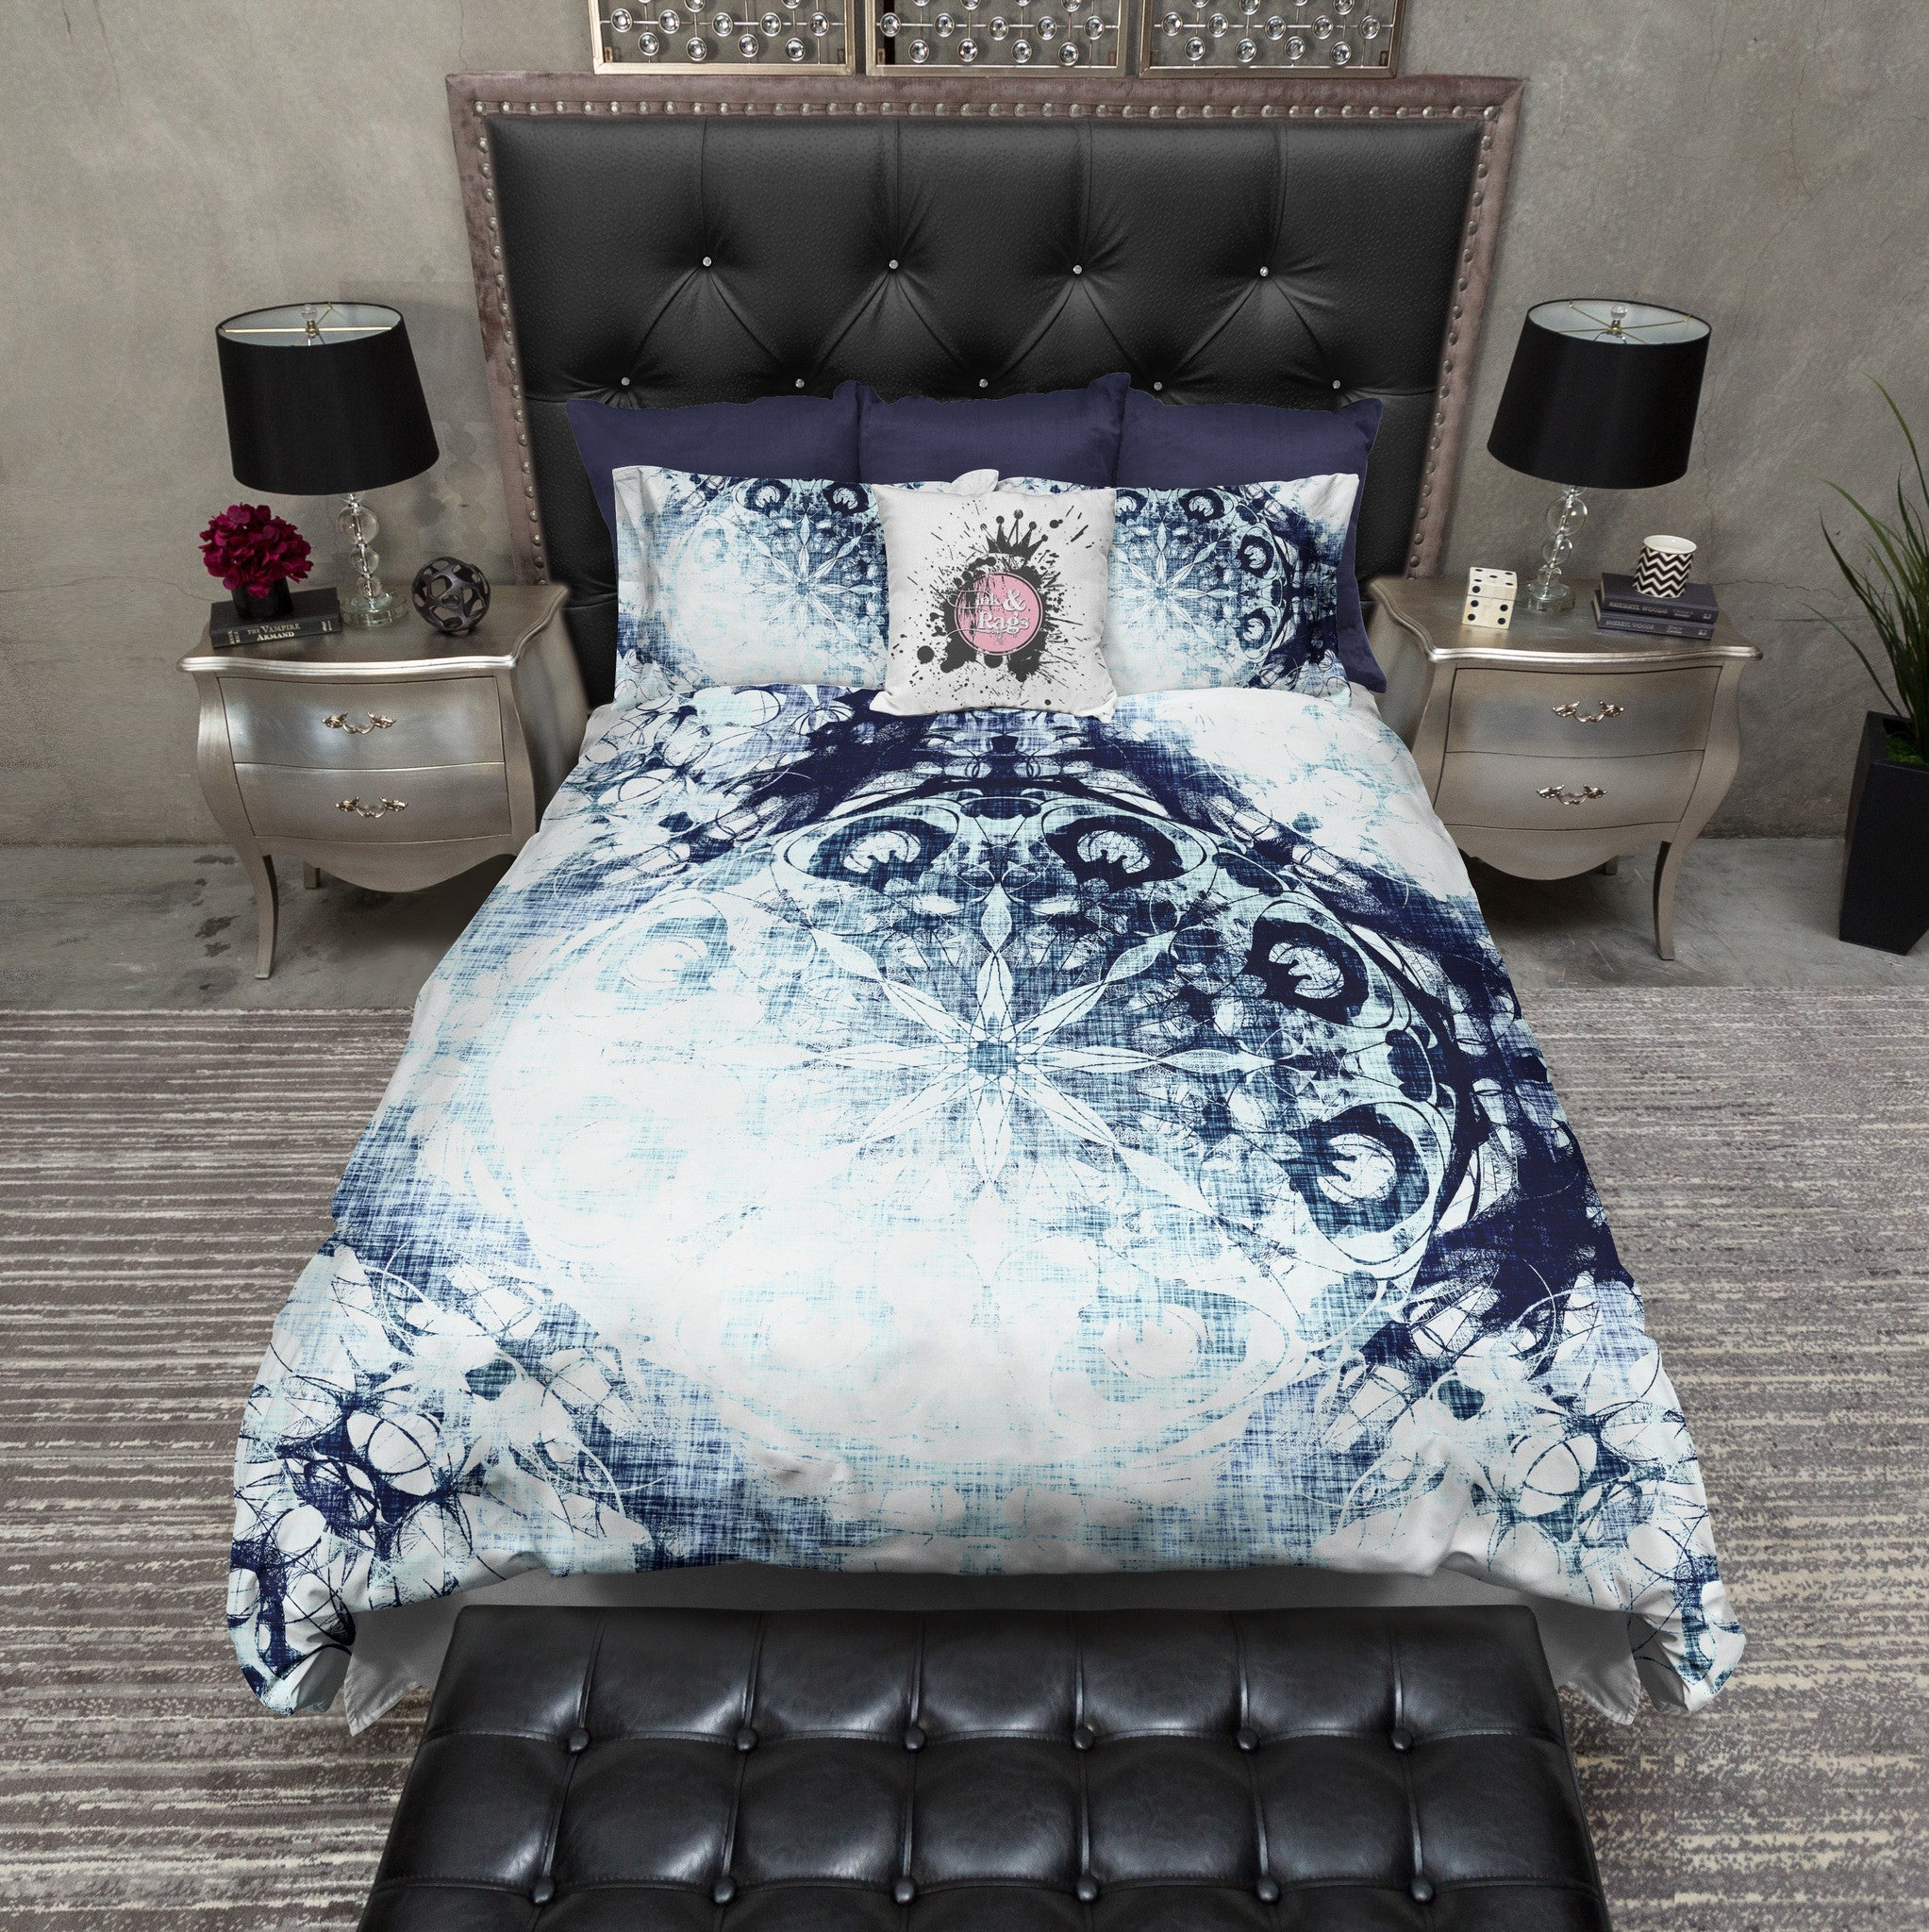 urban twin comforters comforter duvet thinking cover with for duvets xl pom style magical waterfall look boho outfitters bedding places hippie trim white like blue bedroom